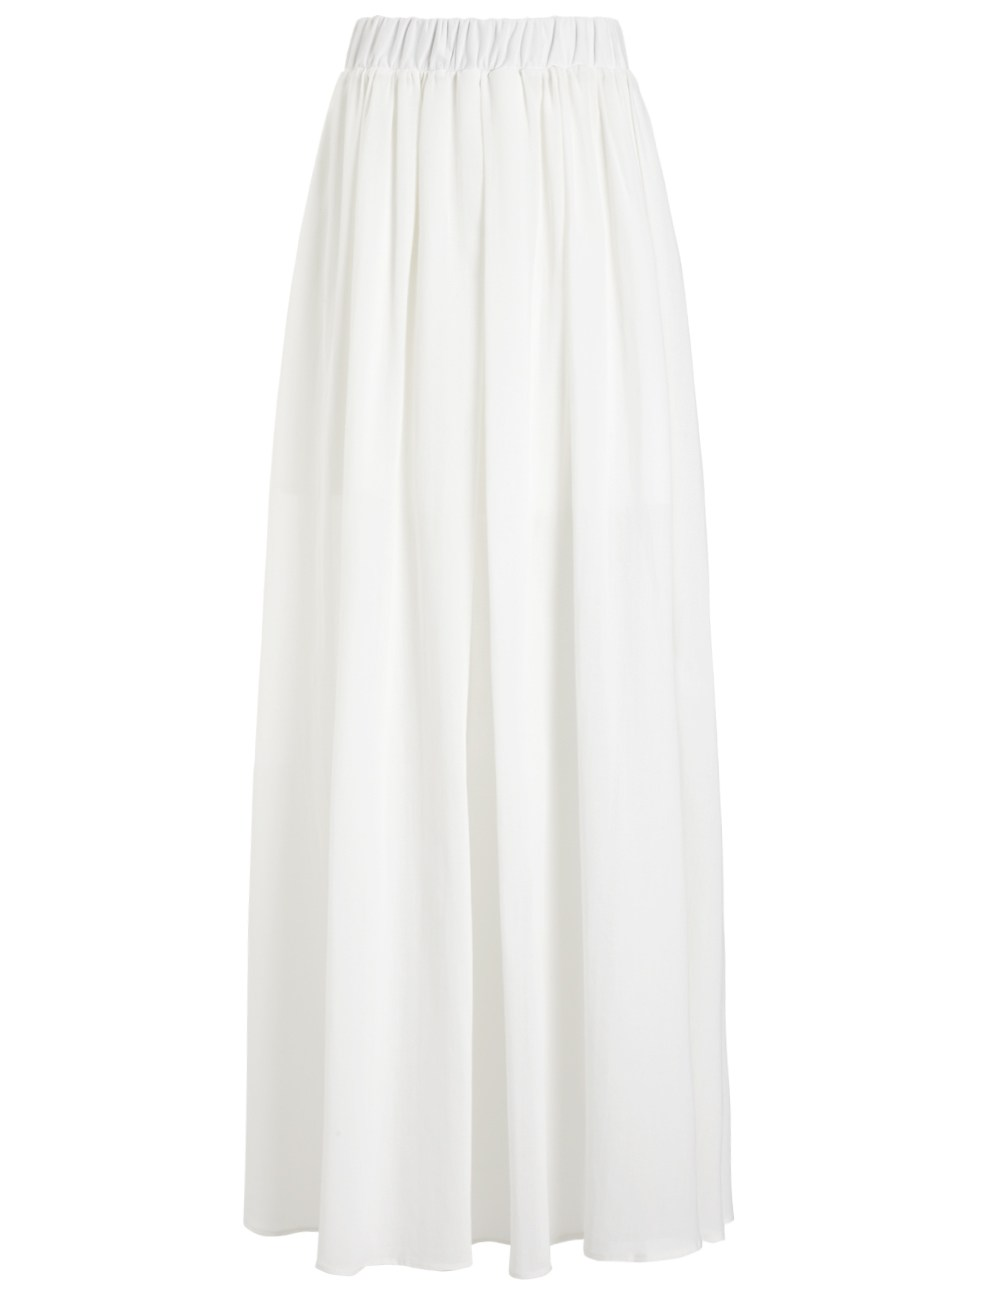 etienne deroeux white node maxi skirt in white lyst